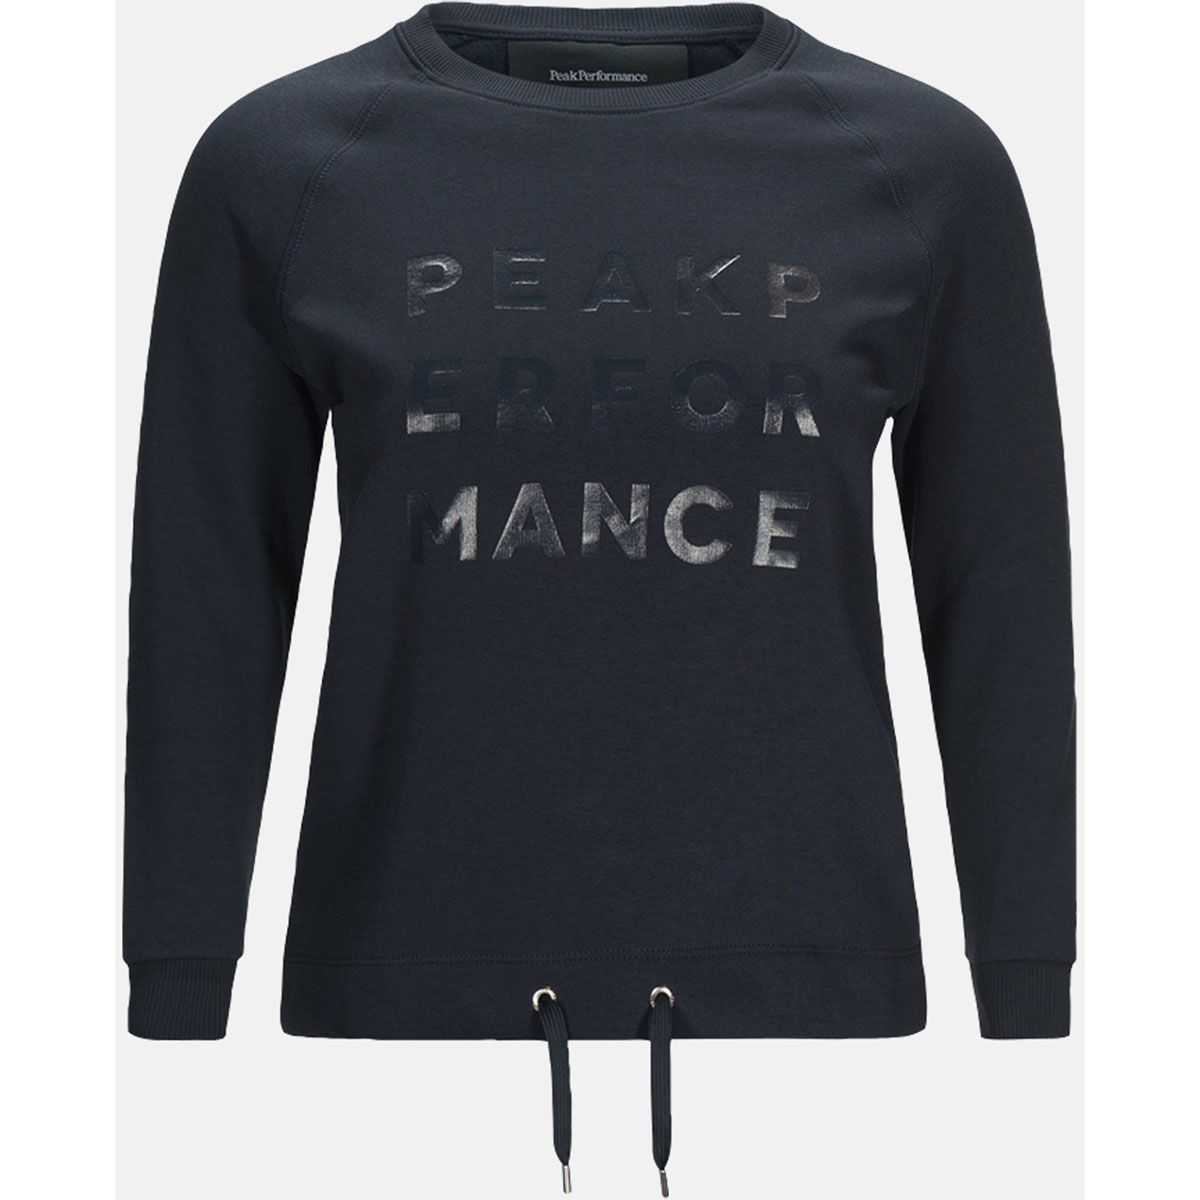 Peak Performance sweater